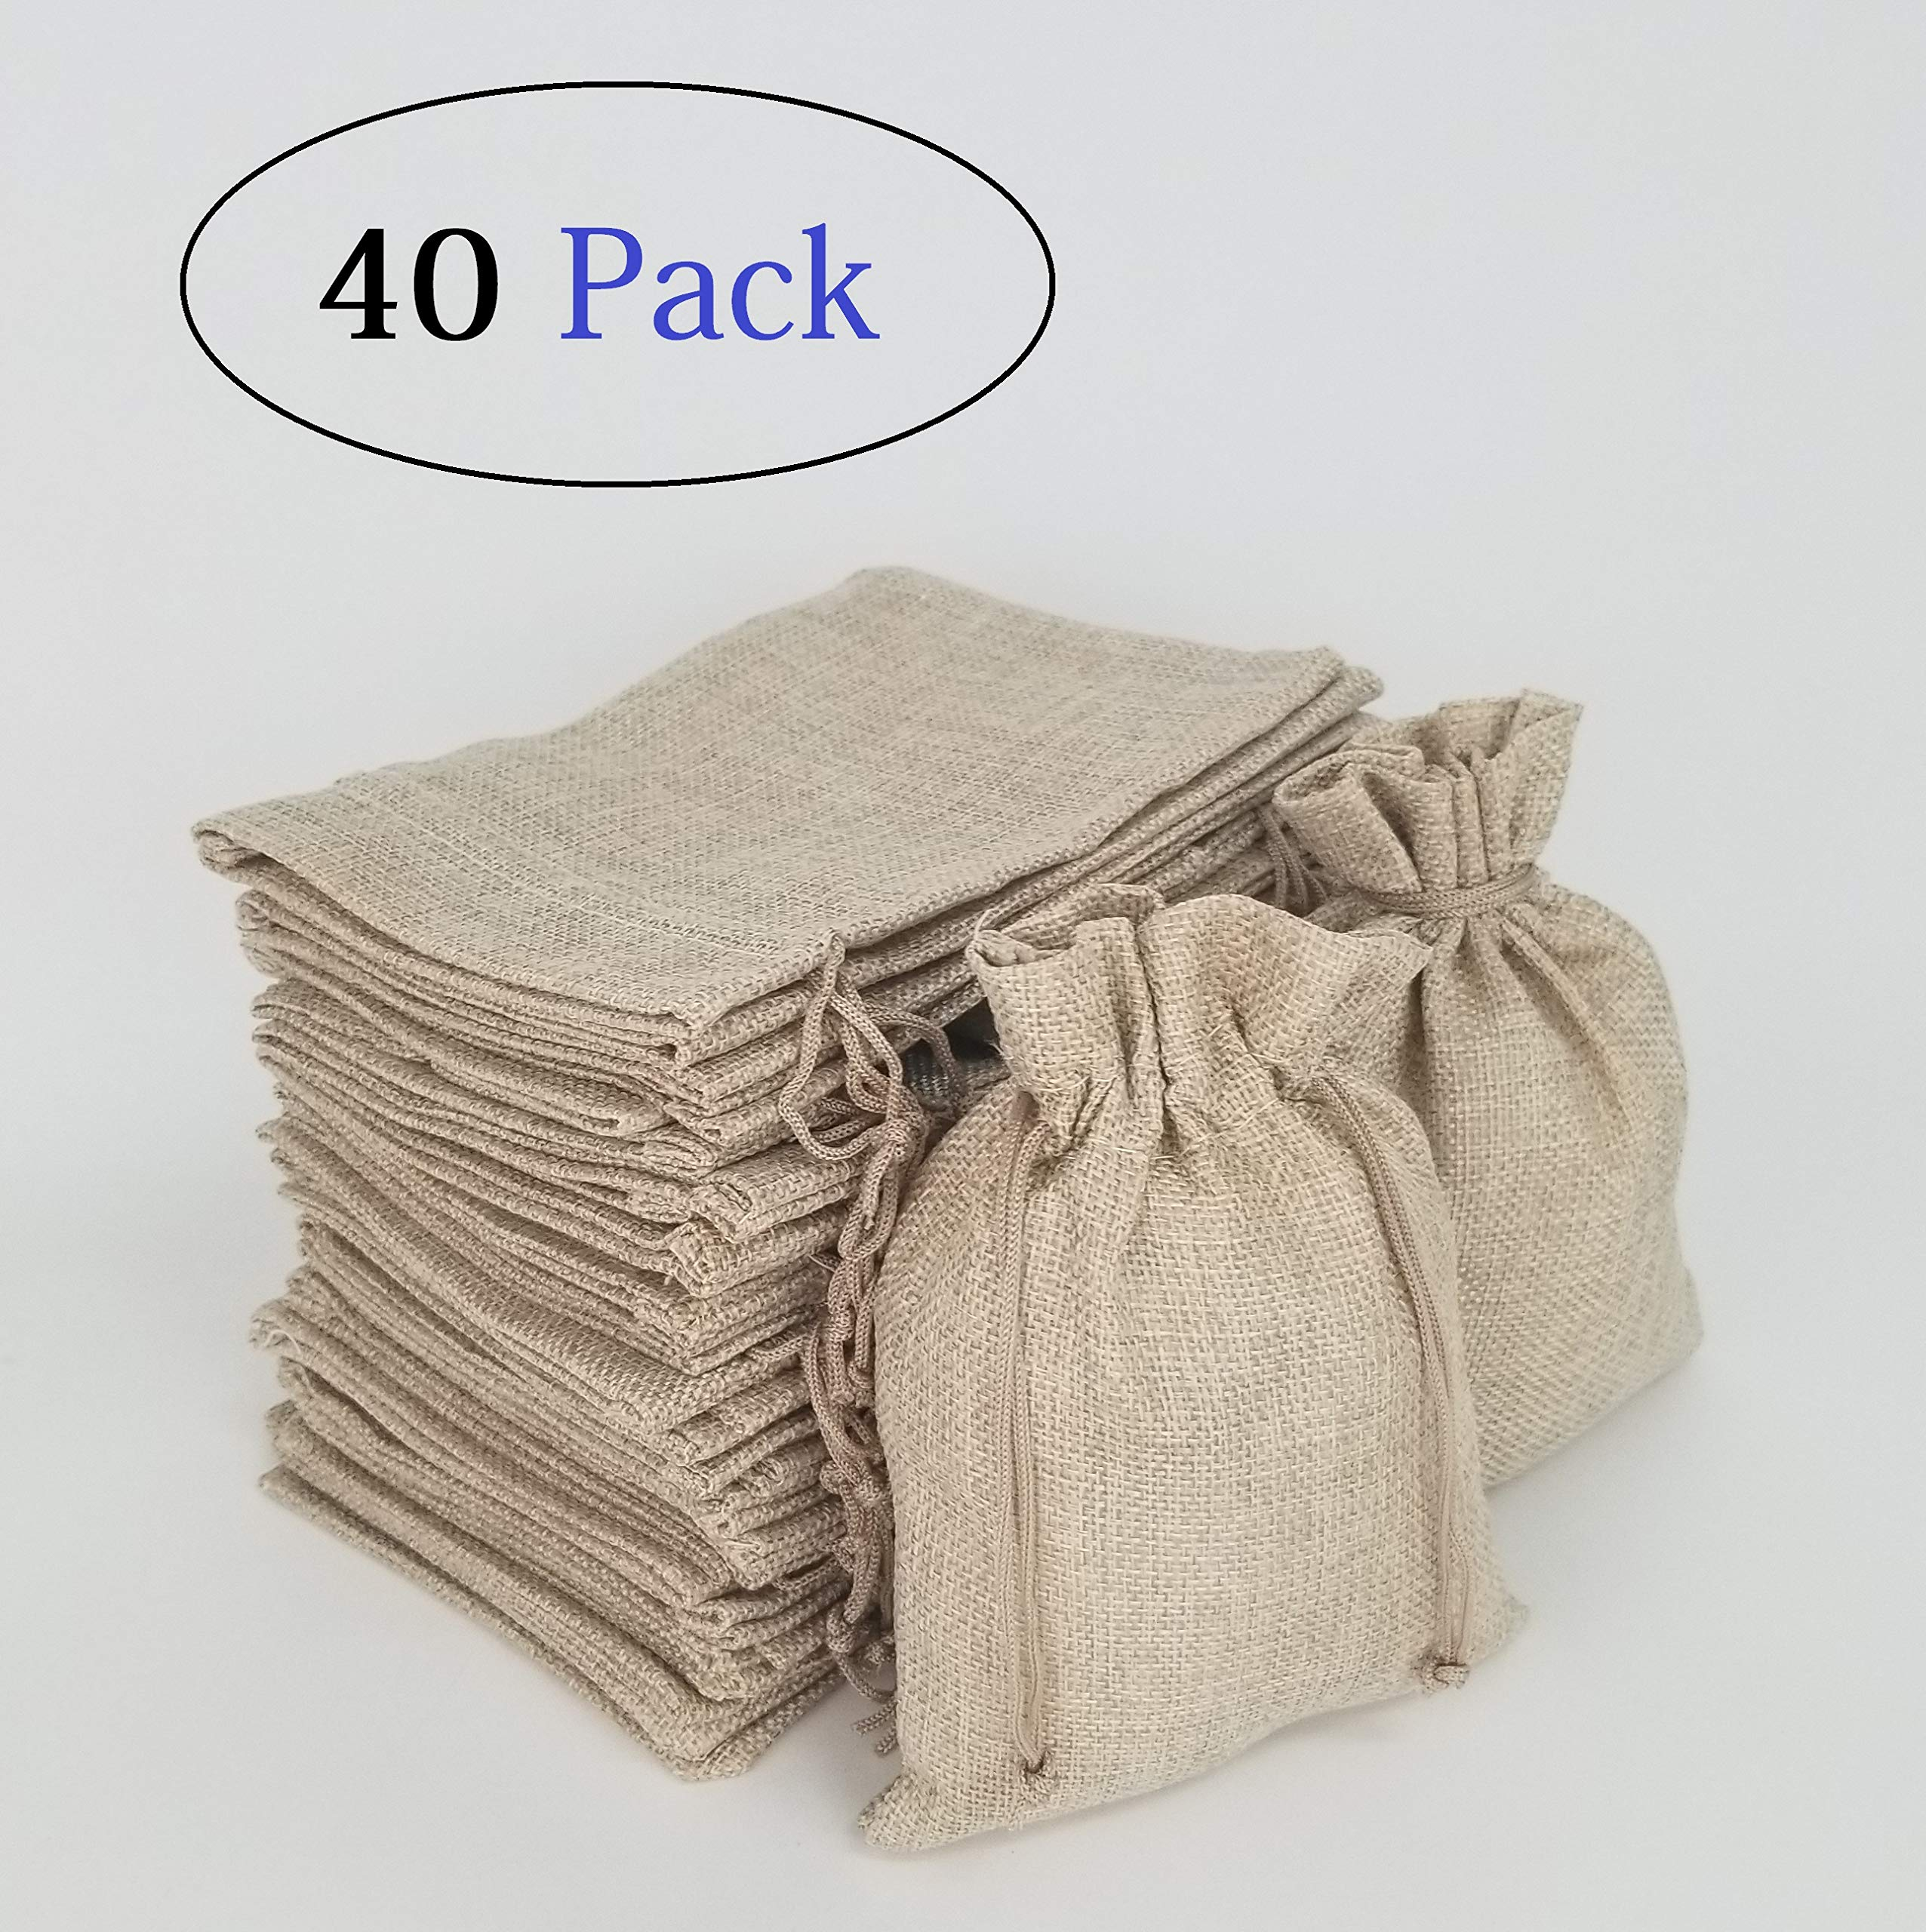 YposHome 40 Packs Burlap Bags 7 x 5 inch Gift Bag for Wedding Jewelry Pouch Snack Sacks for Party (Natural)